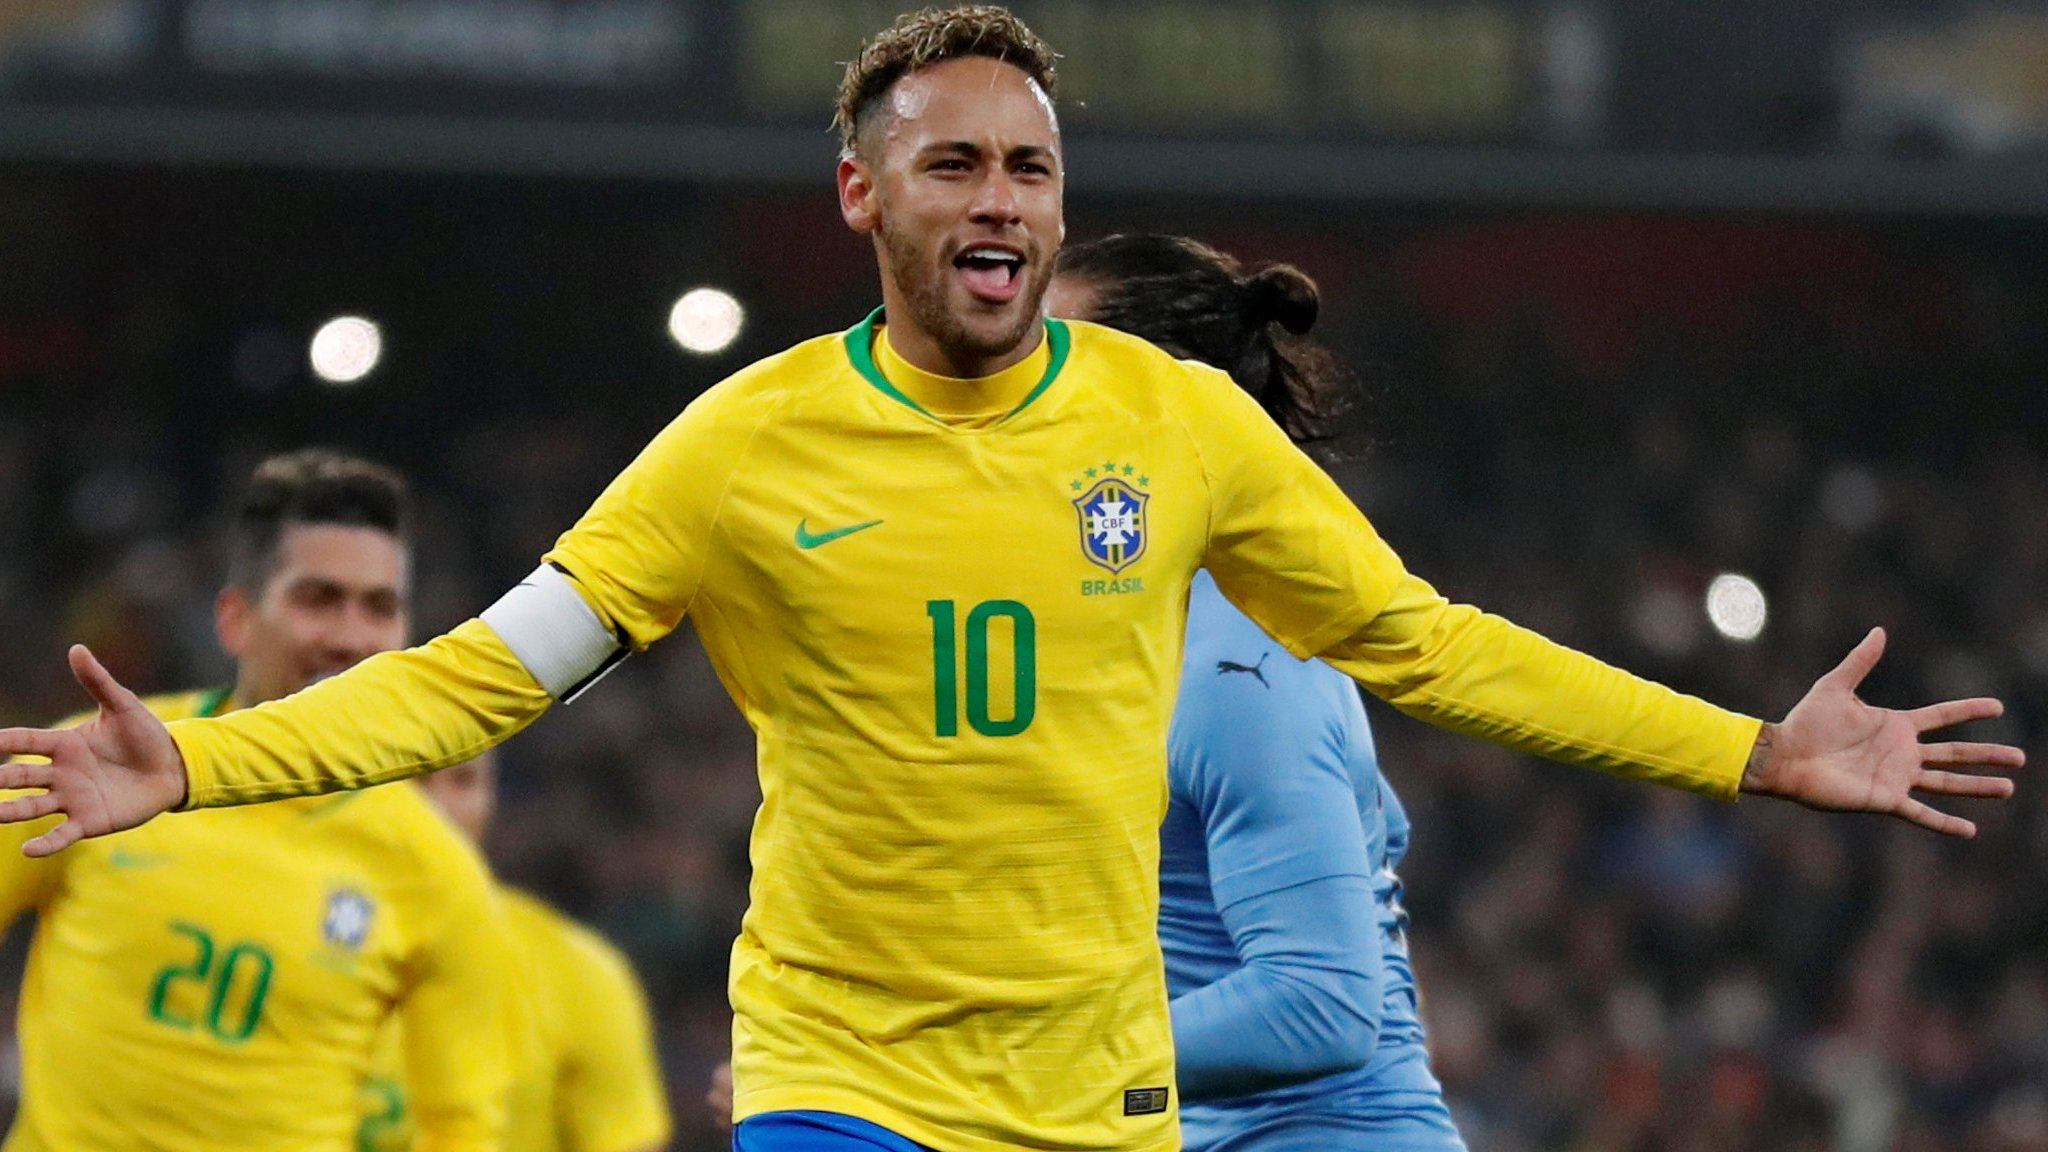 Brazil 1-0 Uruguay: Neymar penalty secures friendly win in London